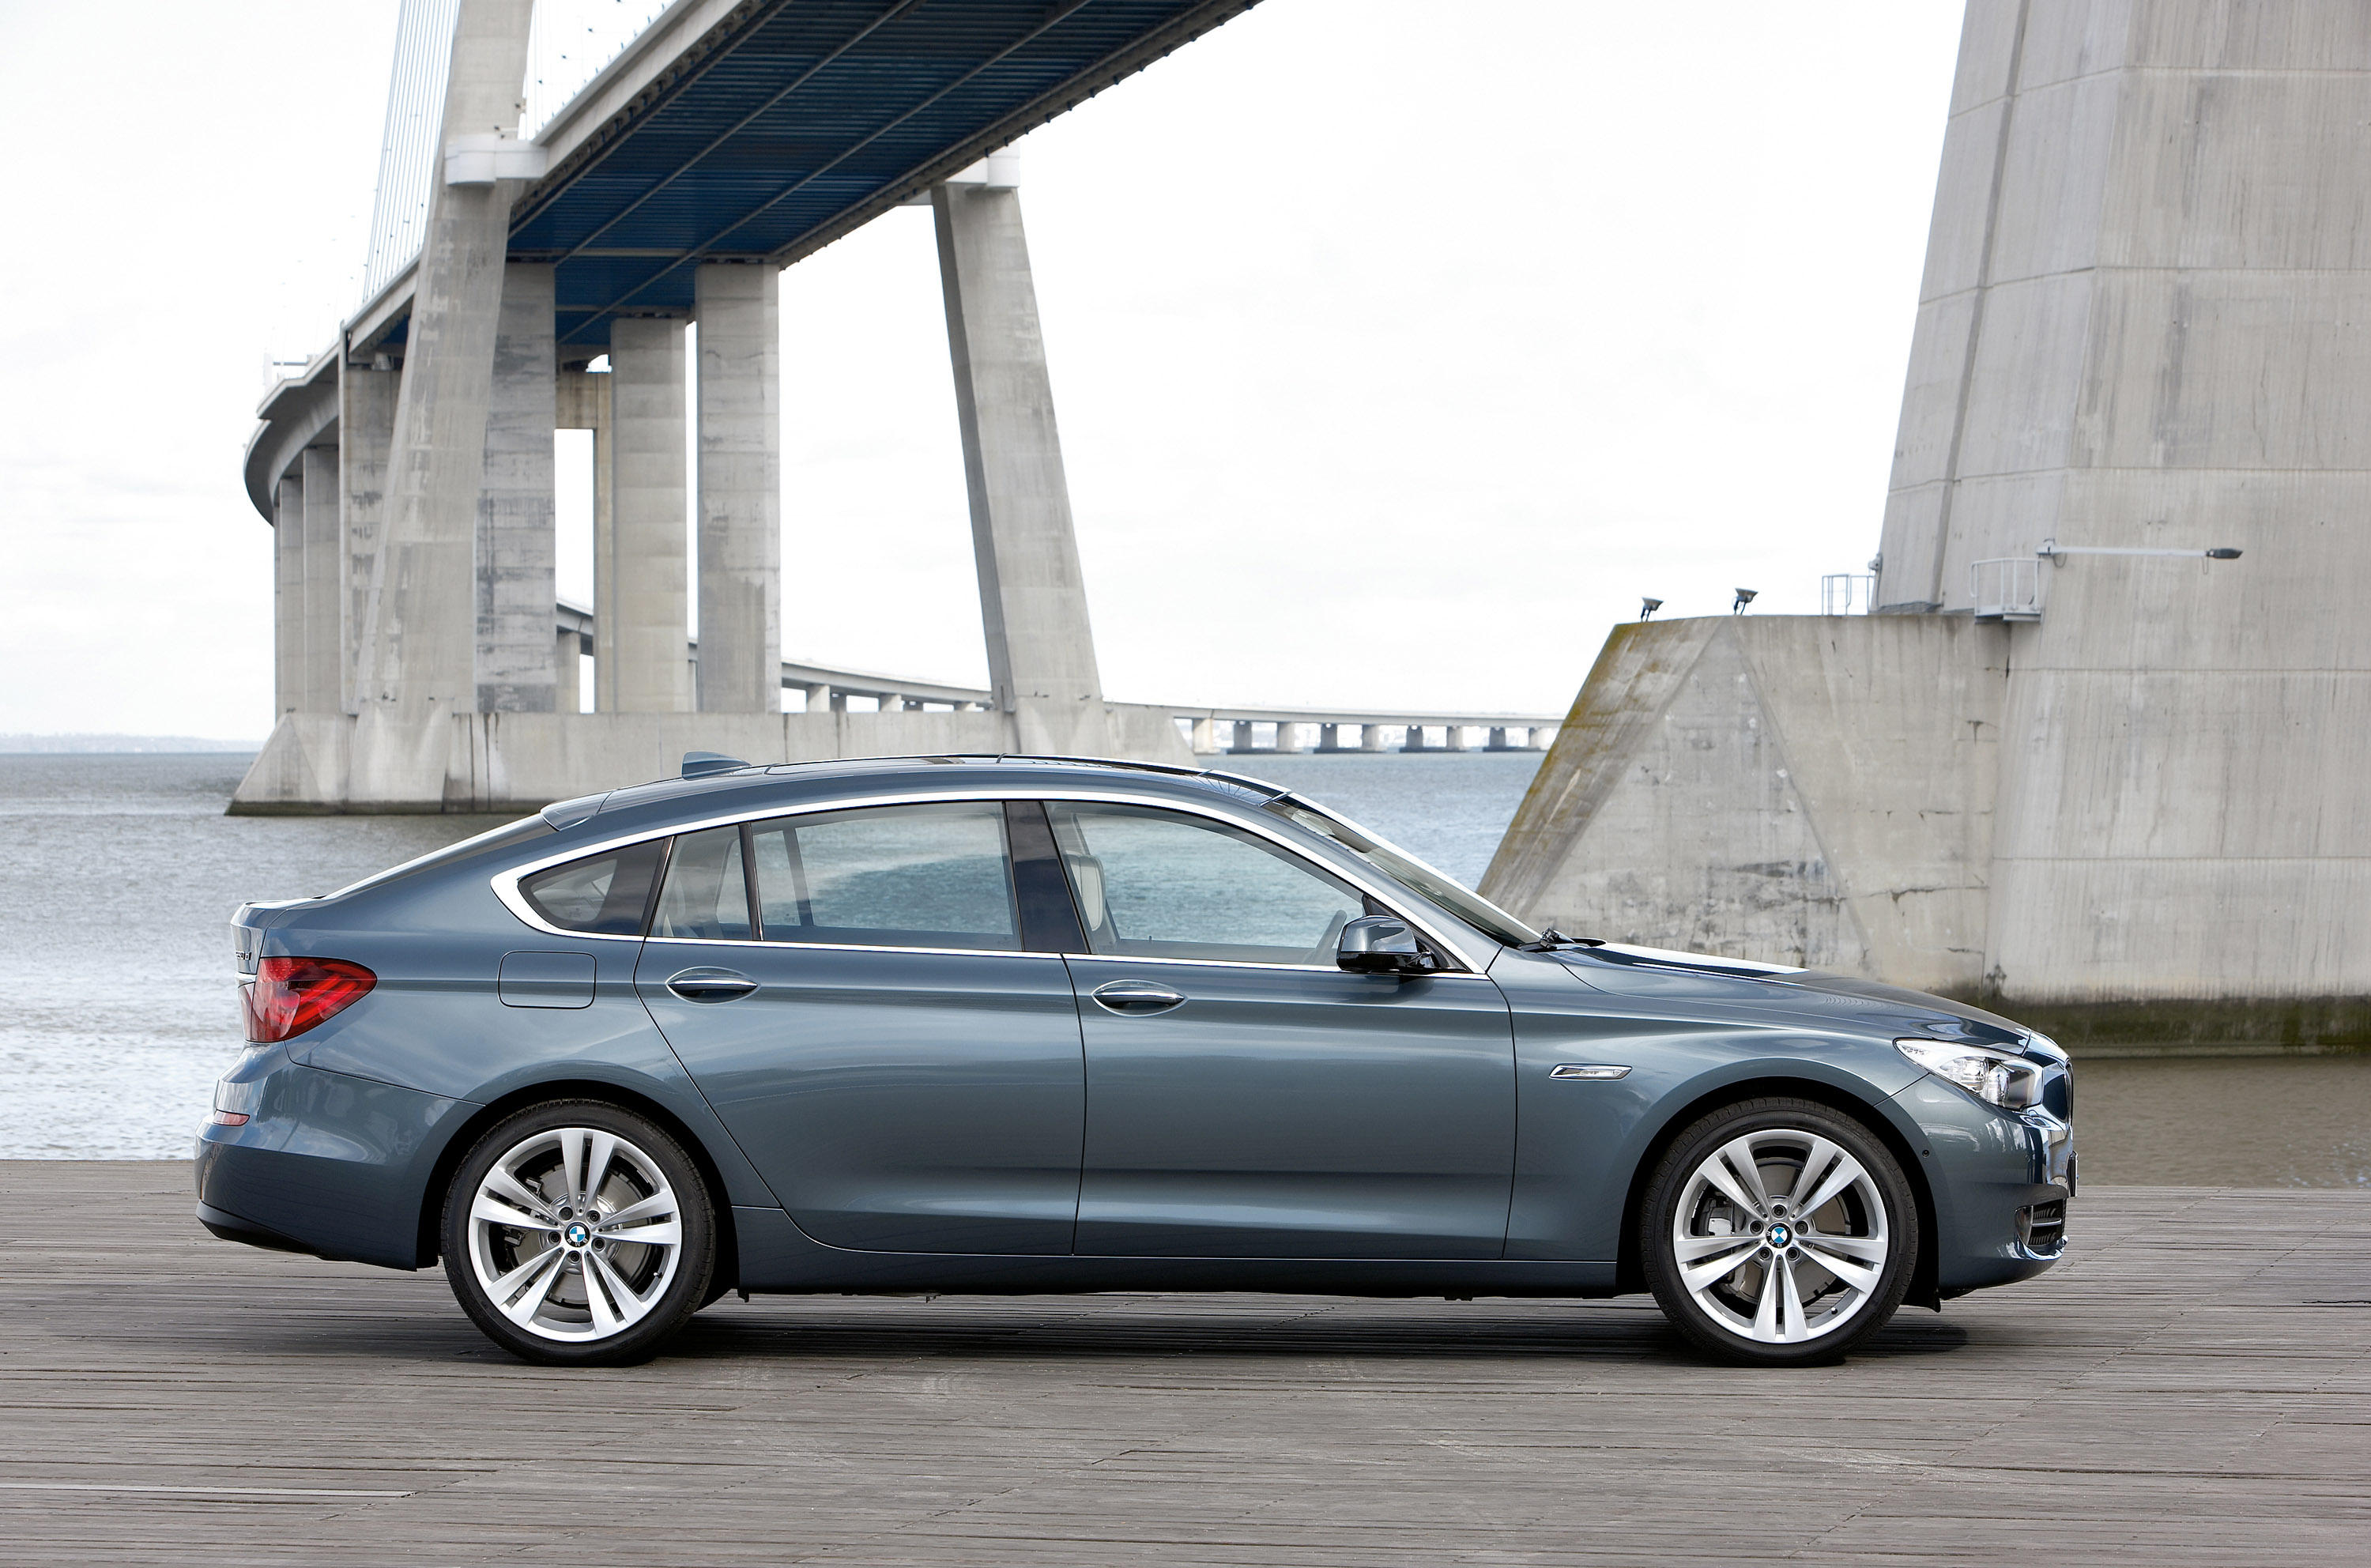 Bmw 5 Series Gt At The International Auto Show Florida